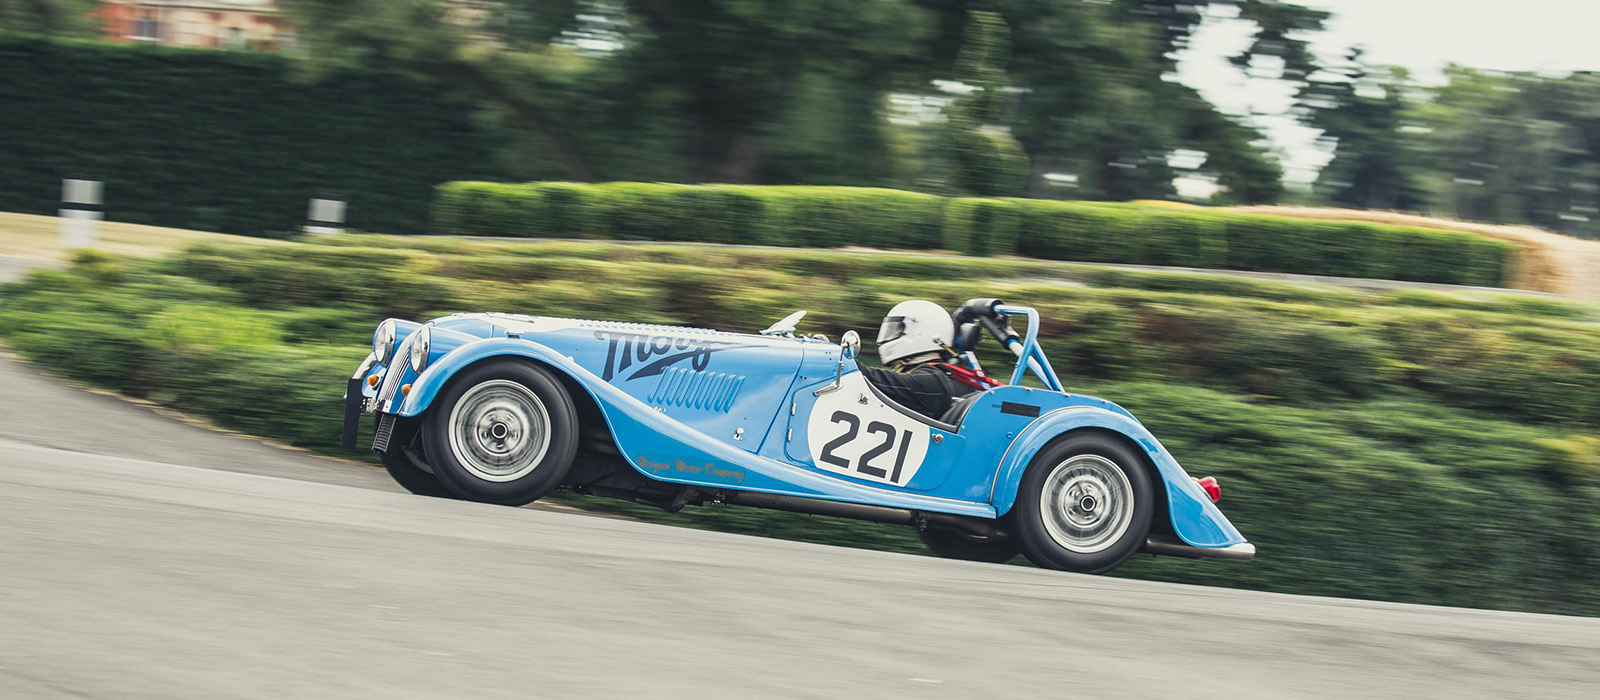 Chateau-Impney-Hill-Climb-Saxon-Classic-Car-Insurance-Luxury-Prestige-Motorsport.jpg